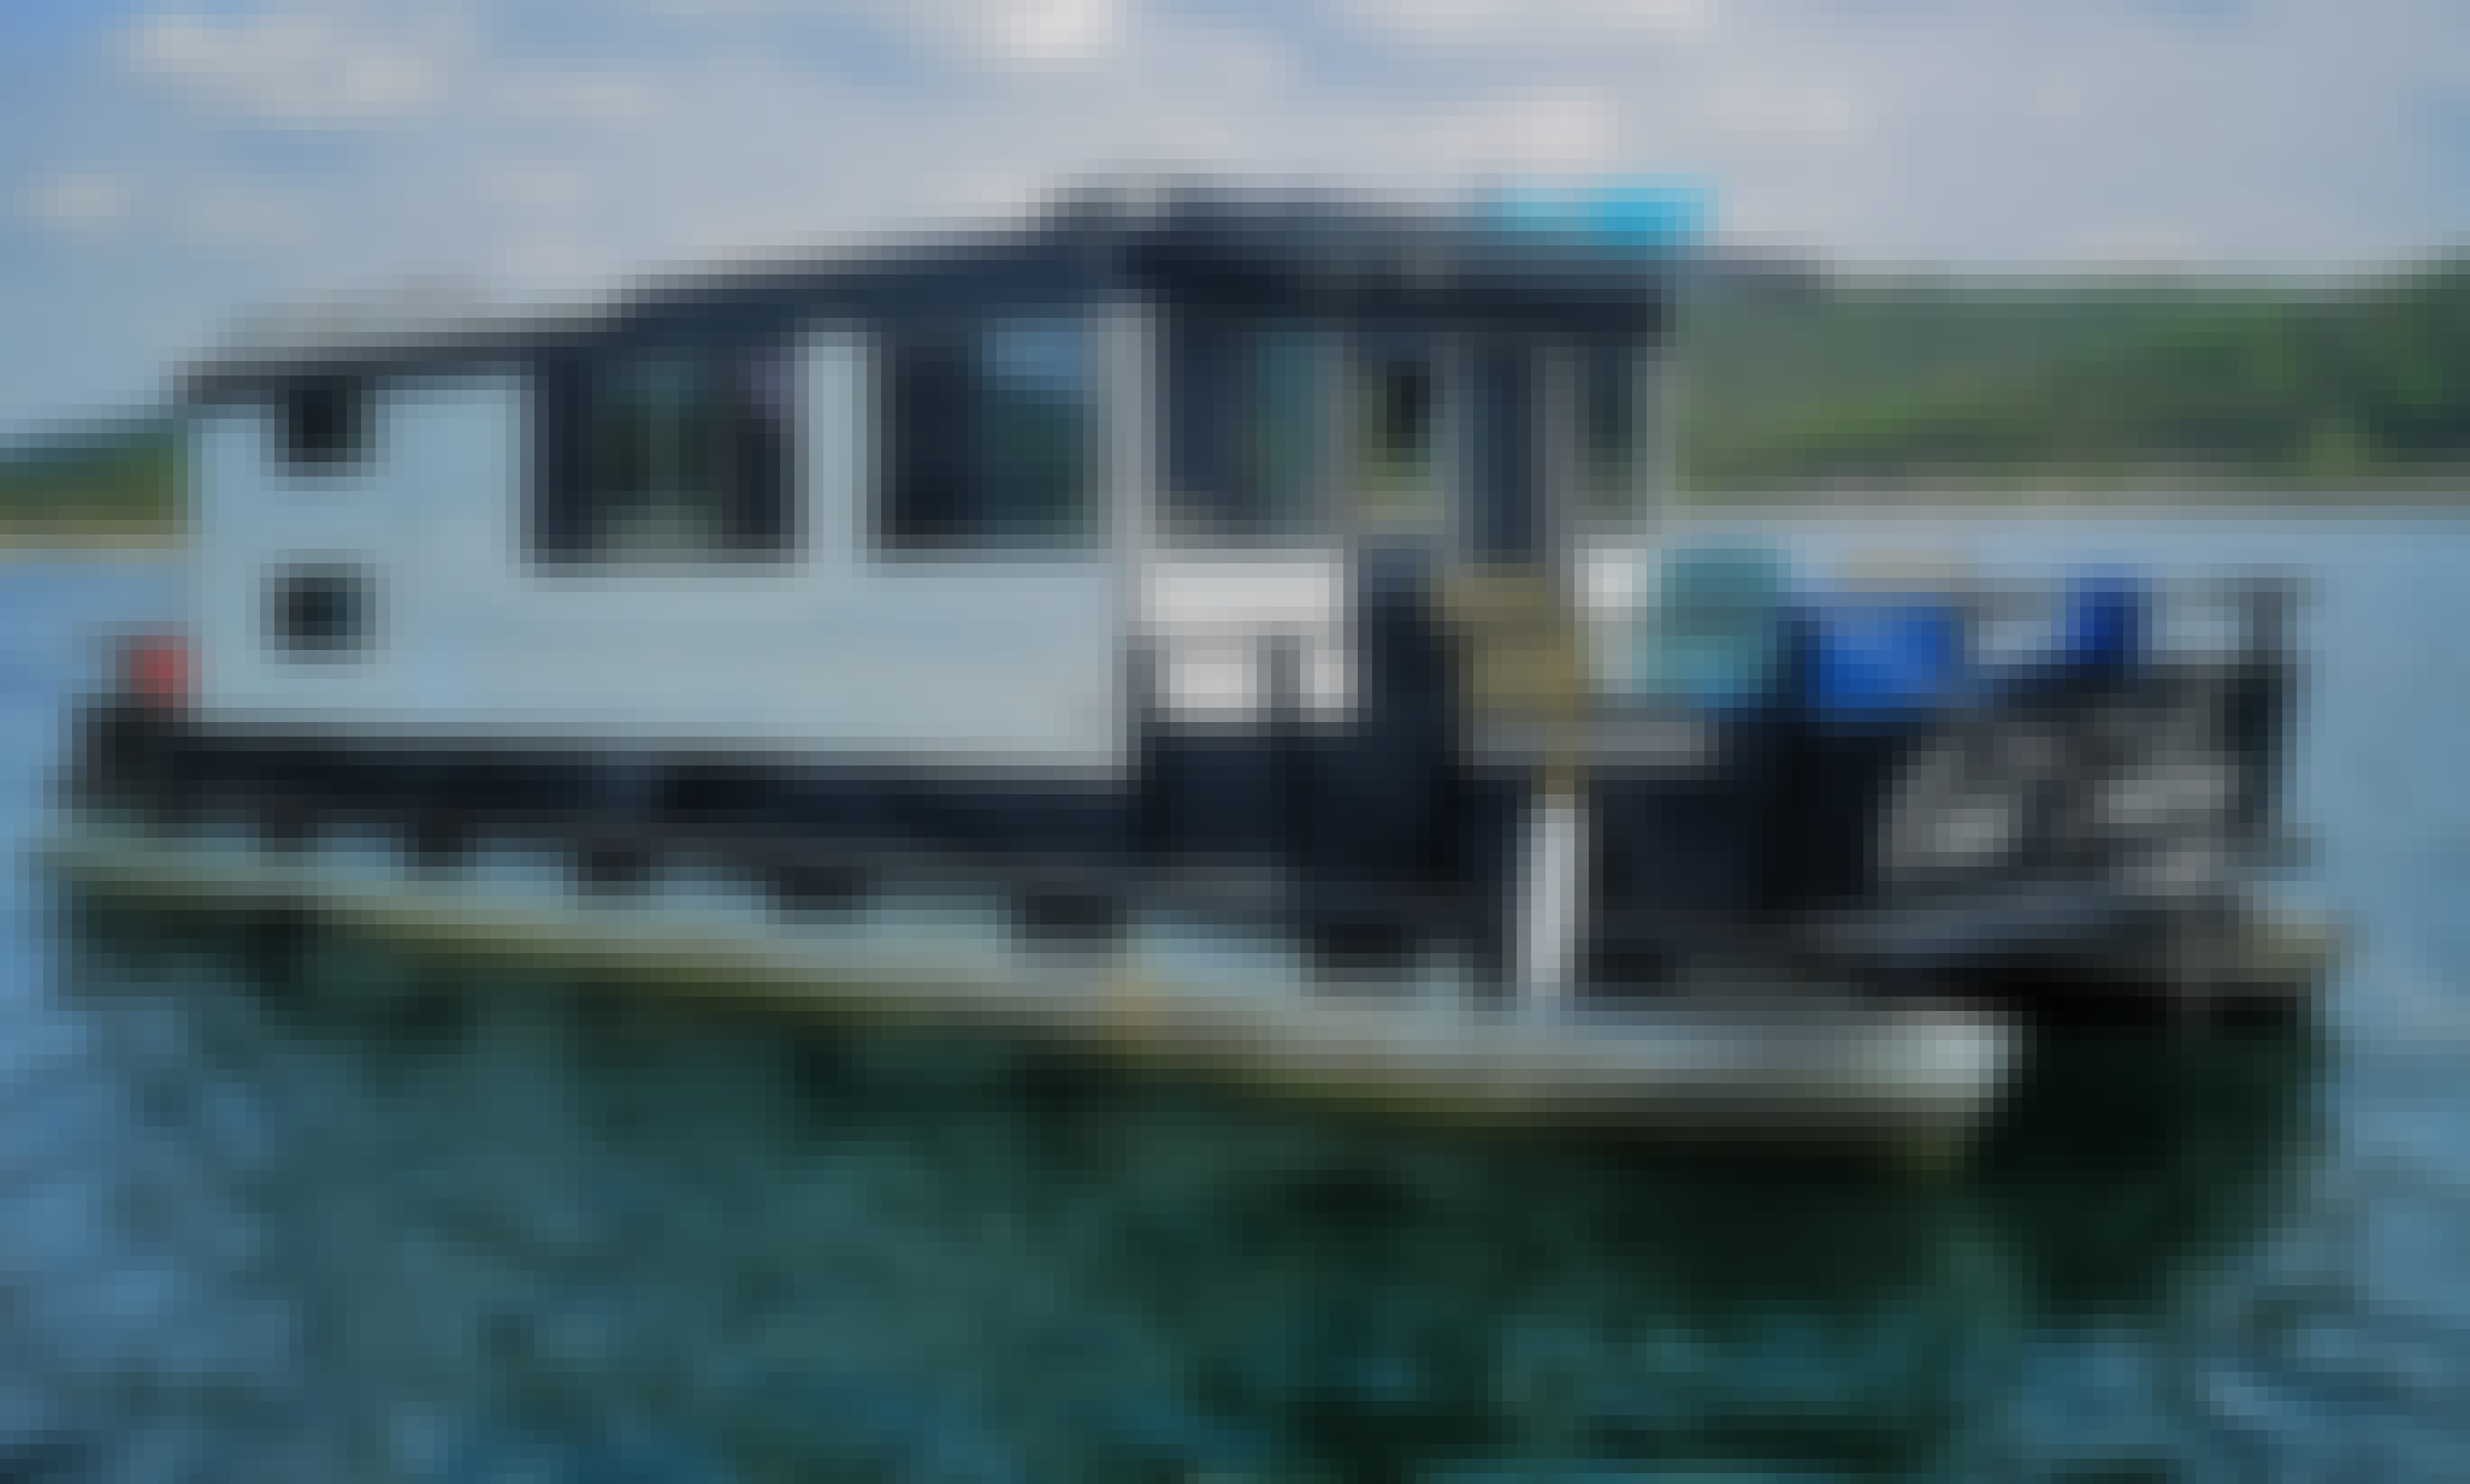 35' Custom Houseboat! Cruise Lake Travis to Hippy Hollow, Cypress Creek cove or Devils Cove